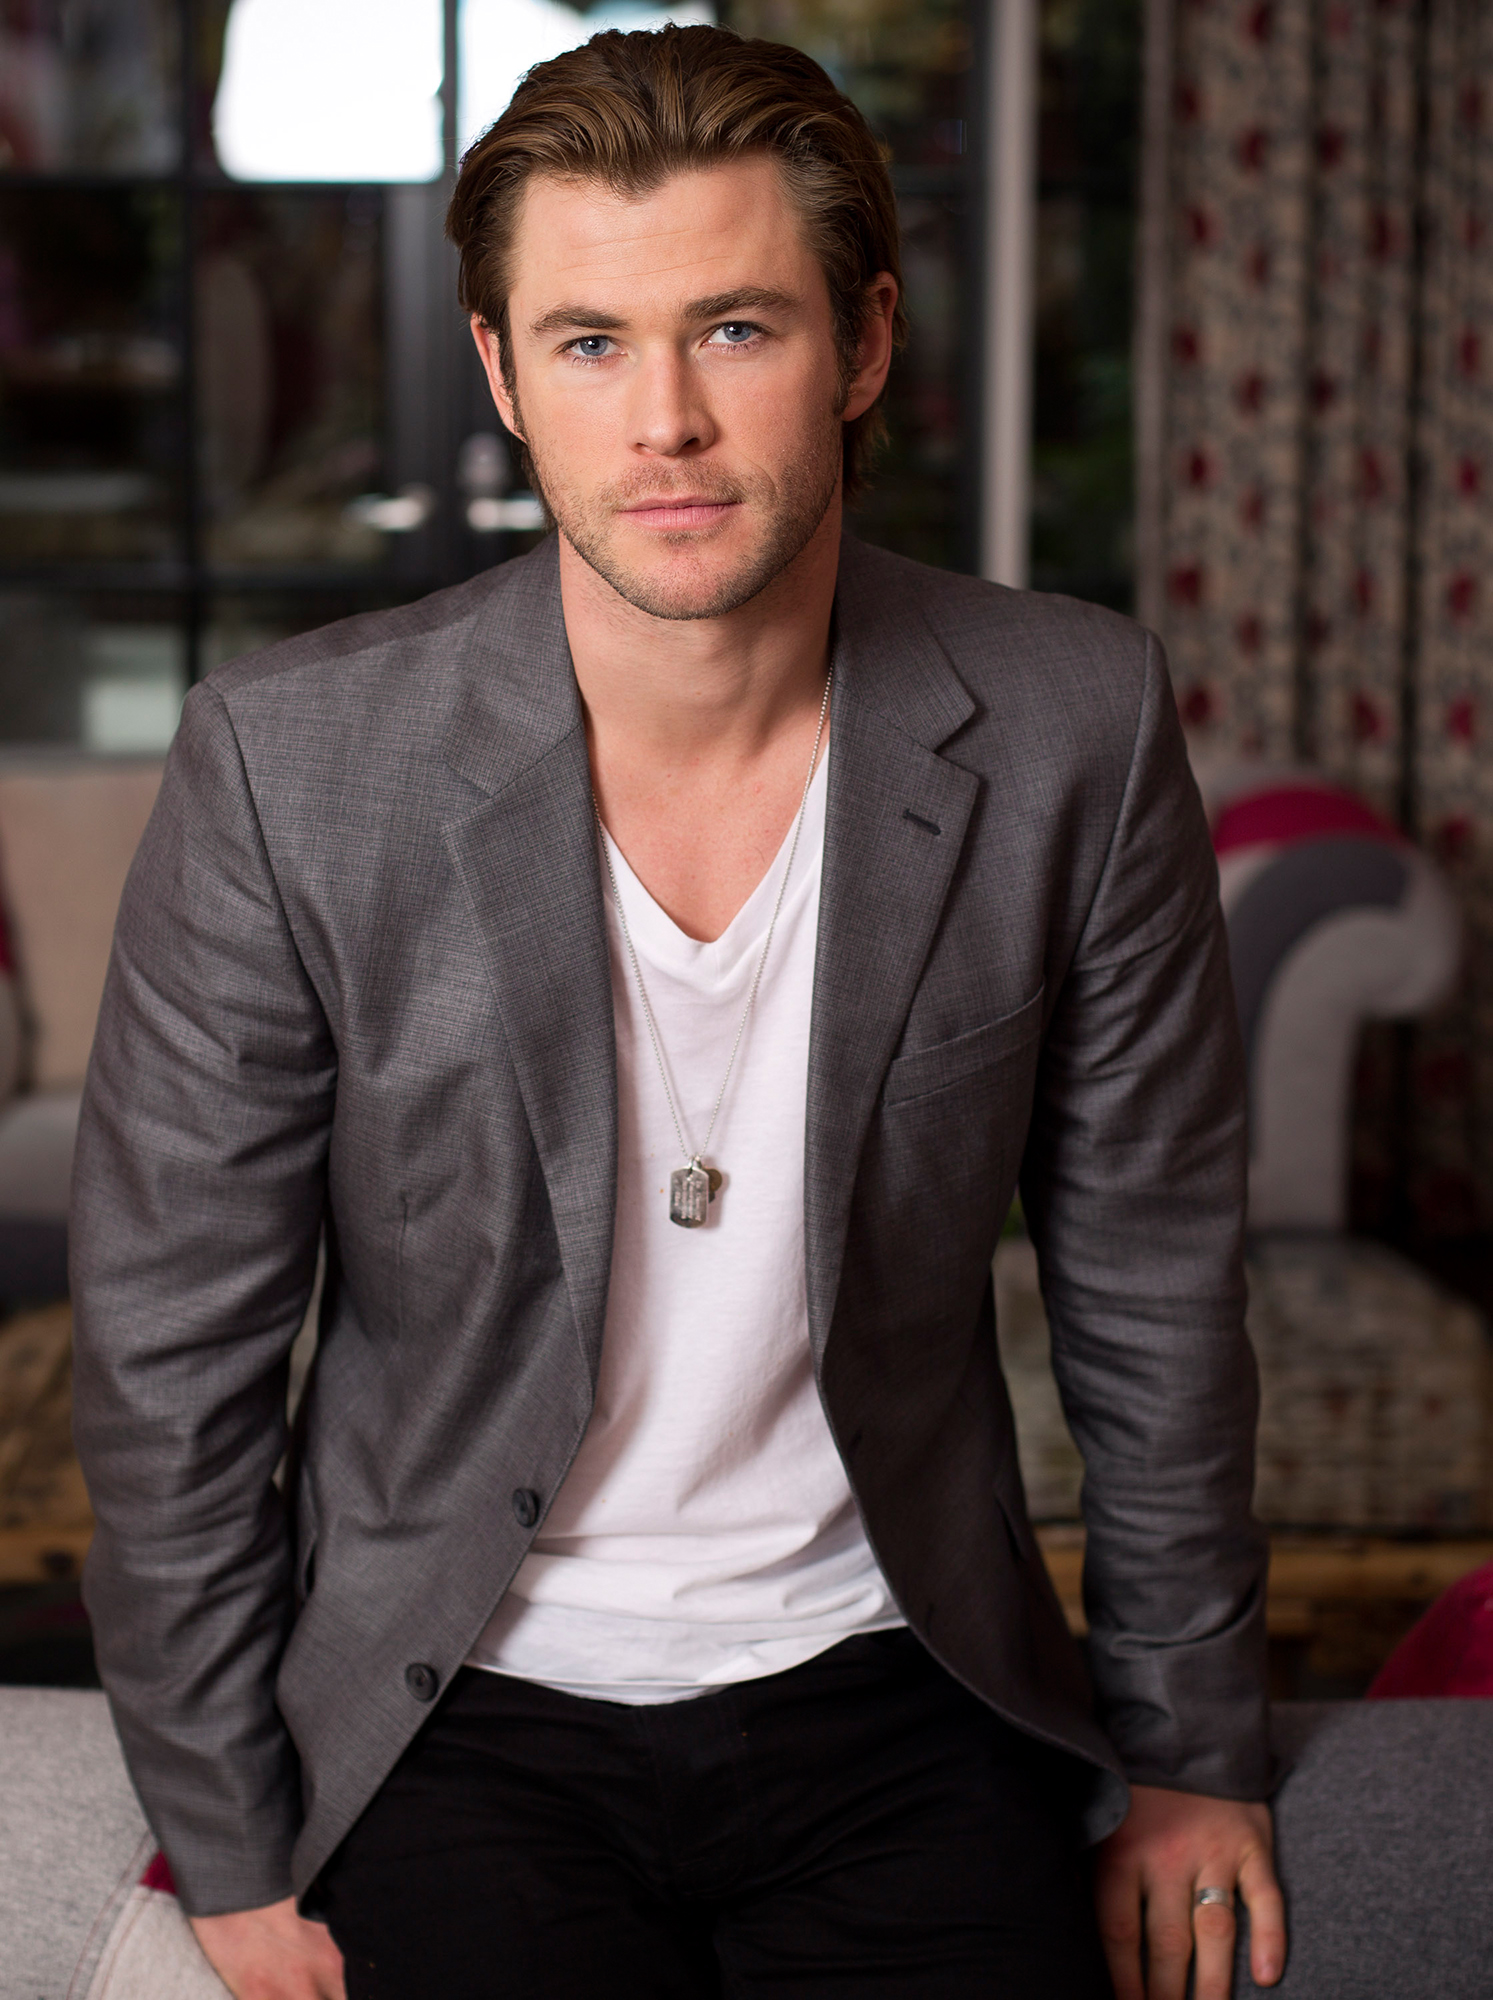 Chris Hemsworth photo #542166